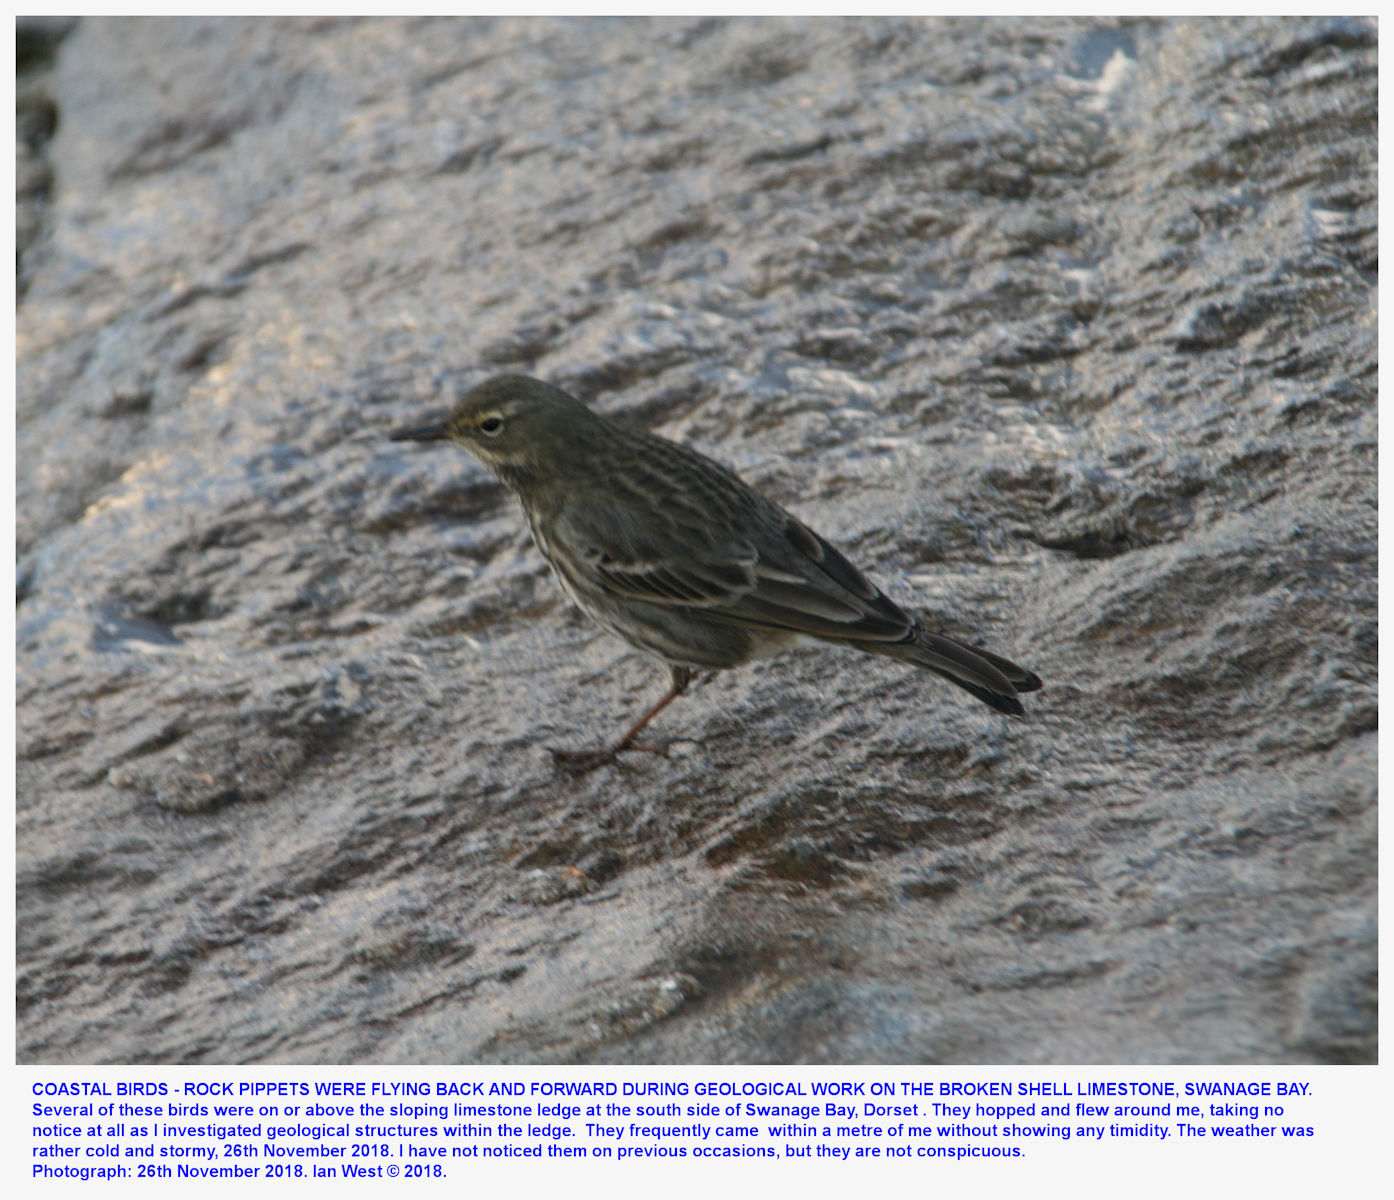 A rock pippet bird on the sloping ledge of Broken Shell Limestone, southeast of Swanage Pier, 26th November 2018